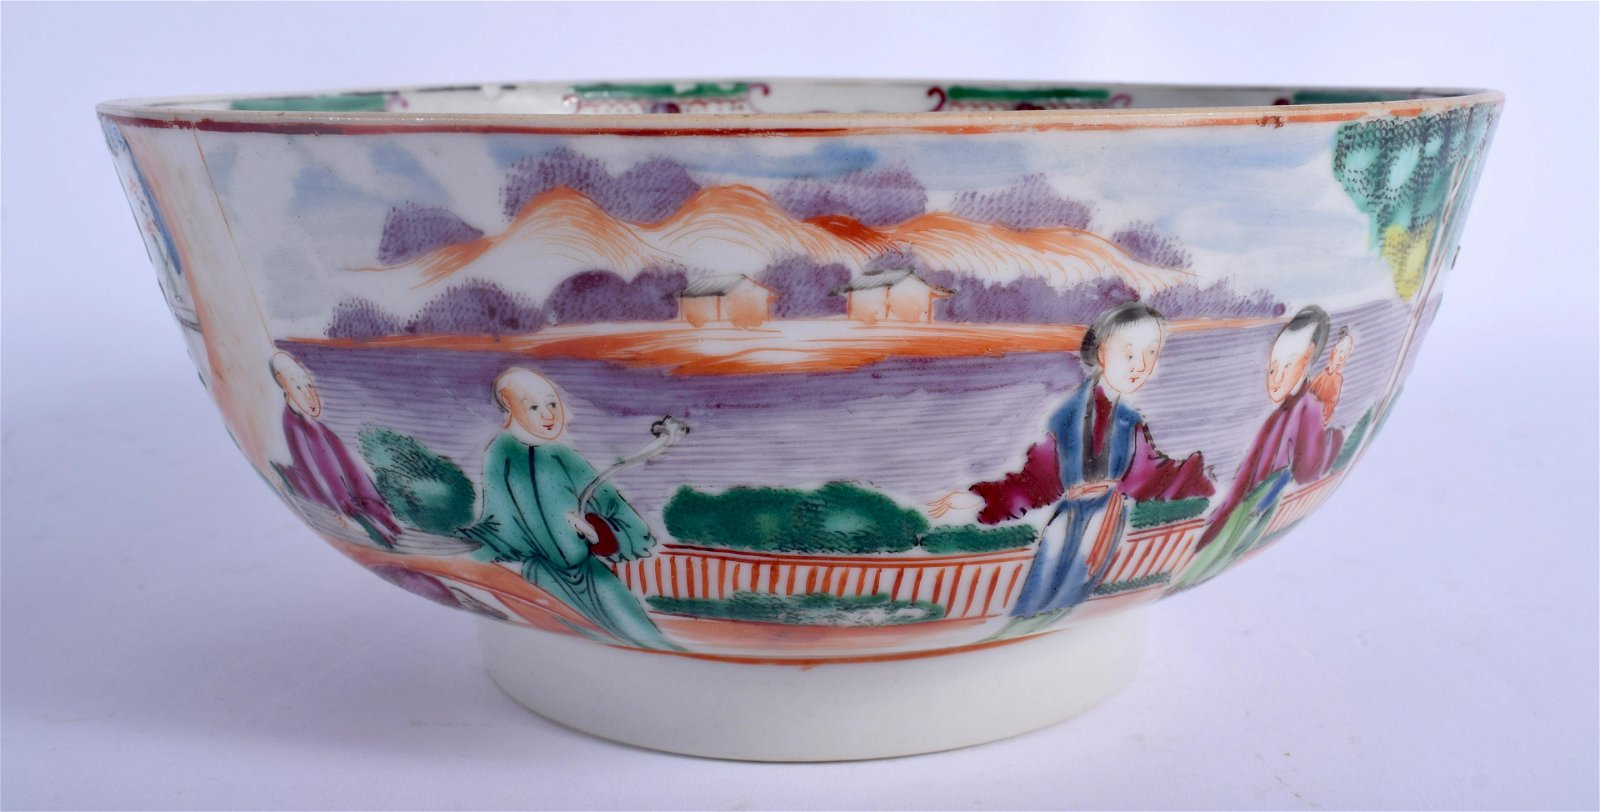 A LARGE 18TH CENTURY CHINESE EXPORT FAMILLE ROSE BOWL